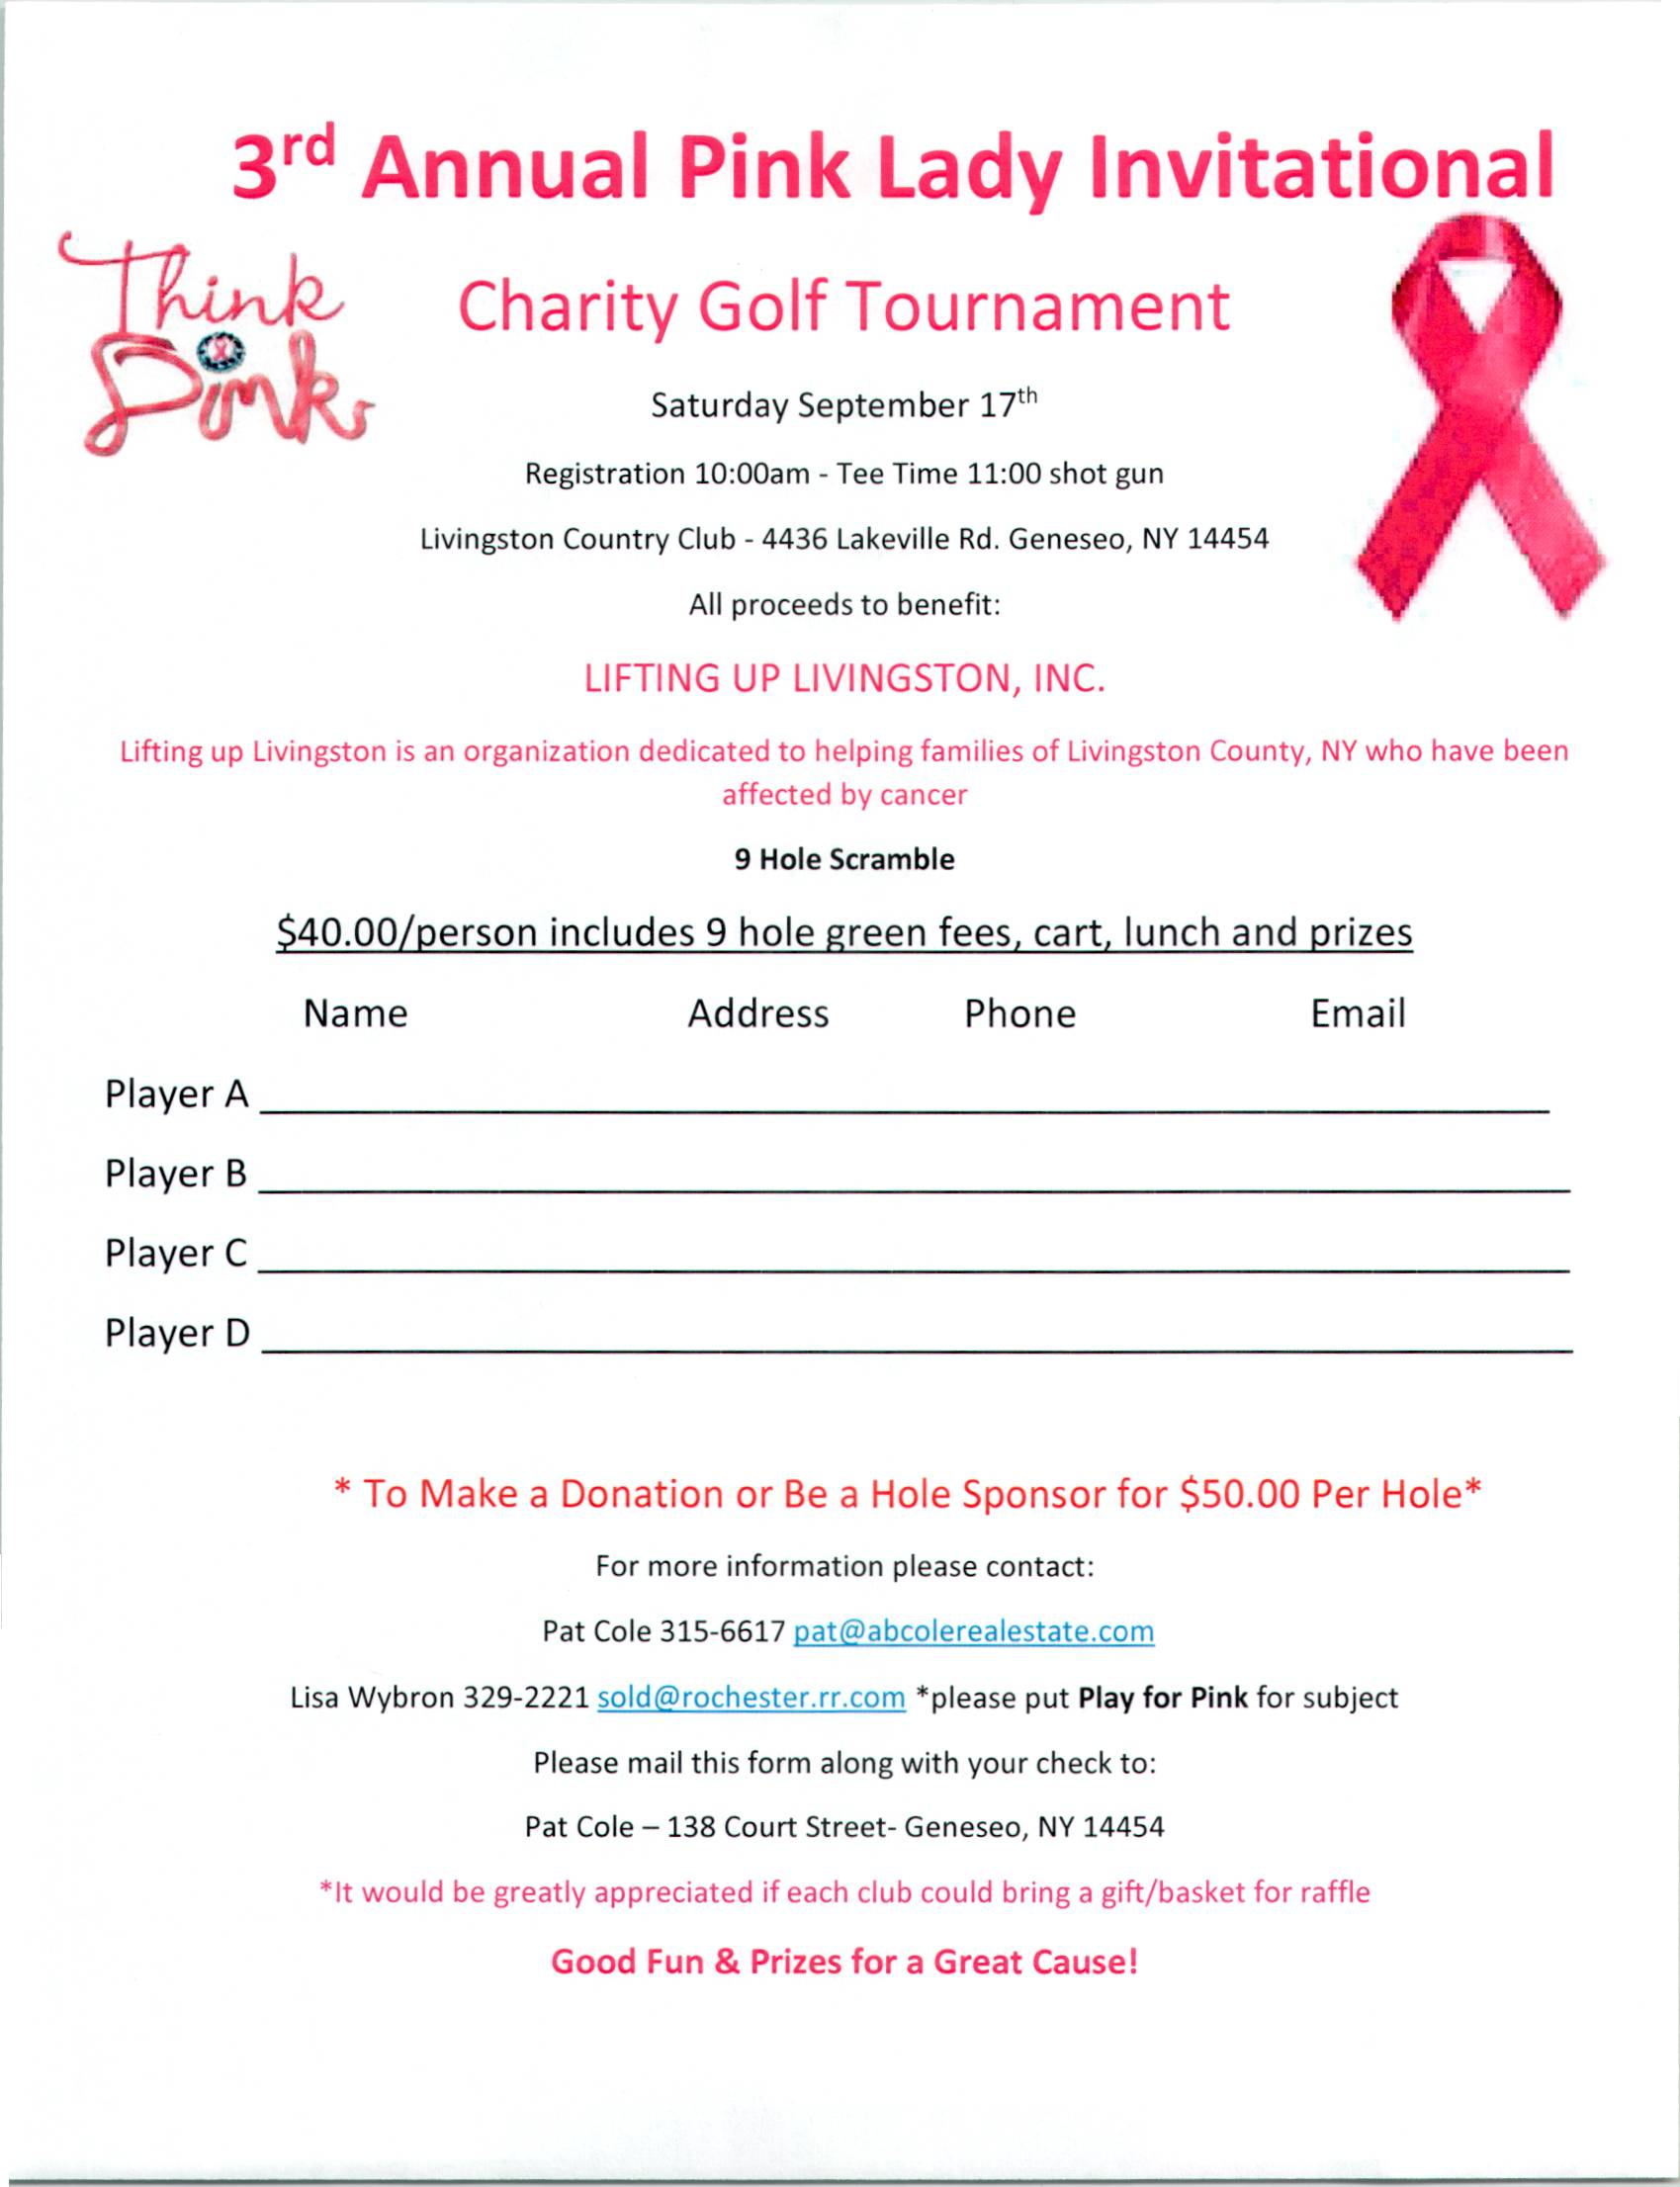 Play for Pink Golf Tournament!